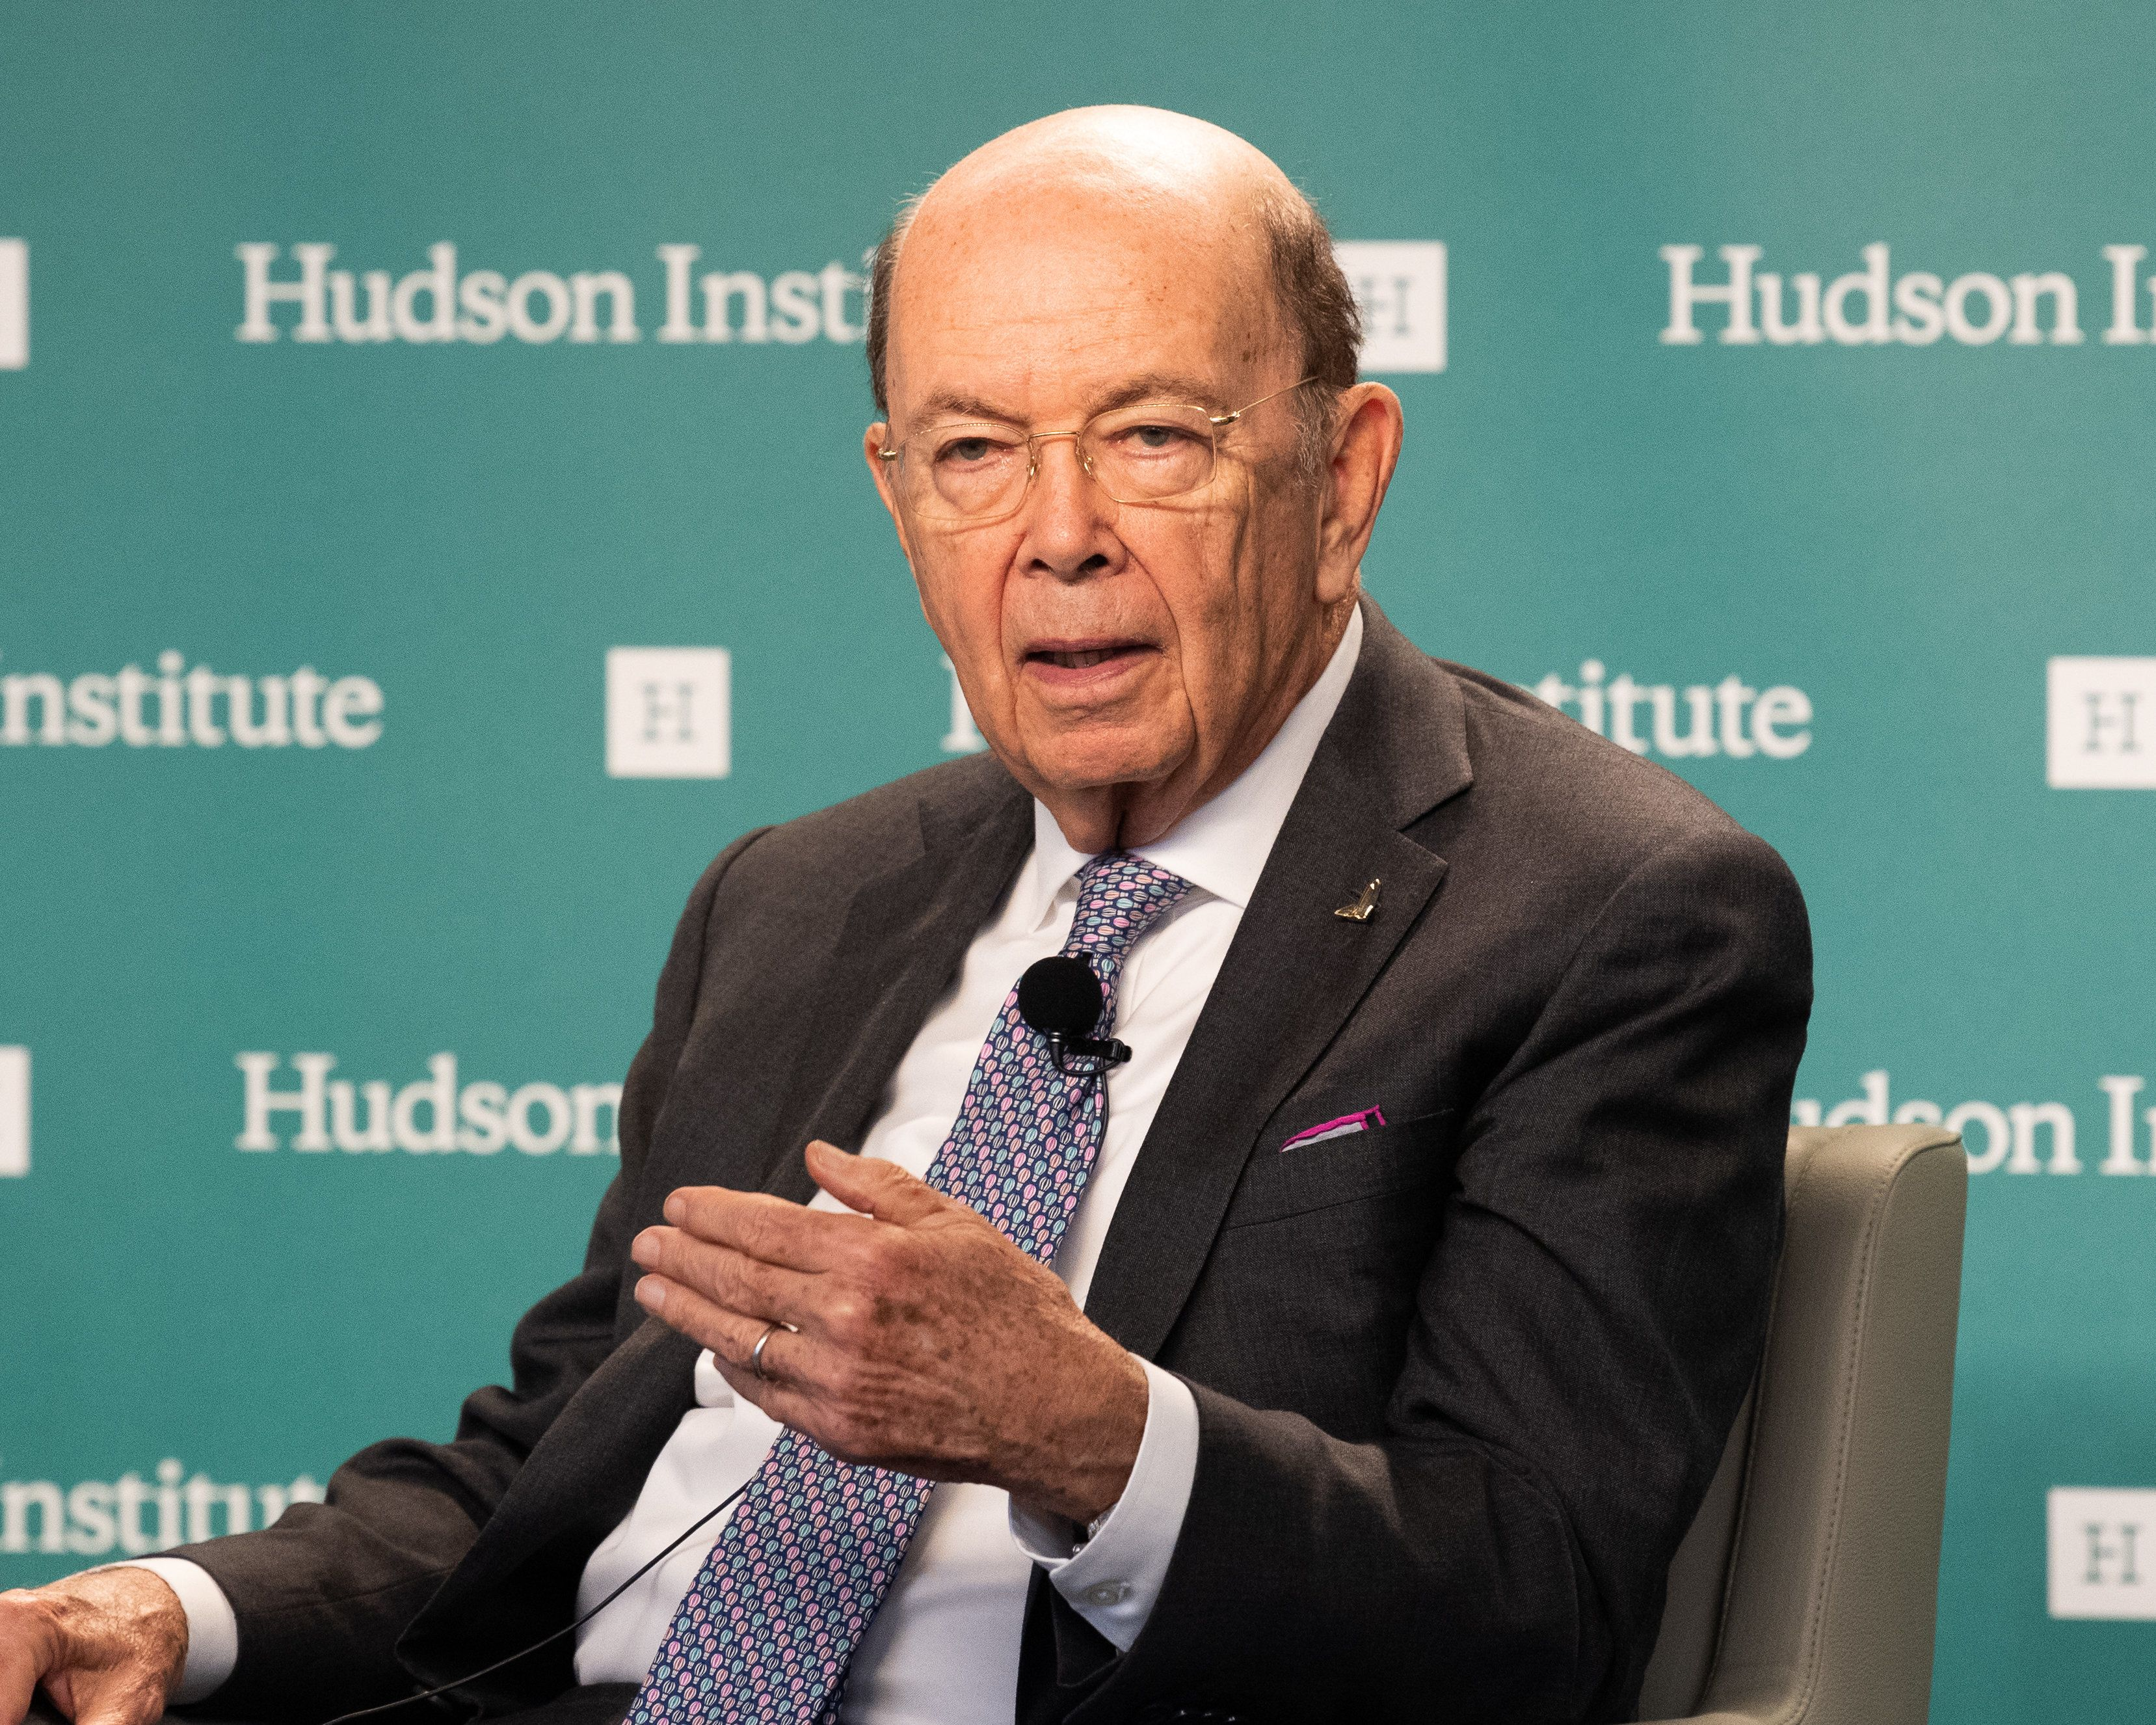 Ross speaks at theHudson Institute in Washington, D.C., two days beforecracking the joke aboard Air Force One.